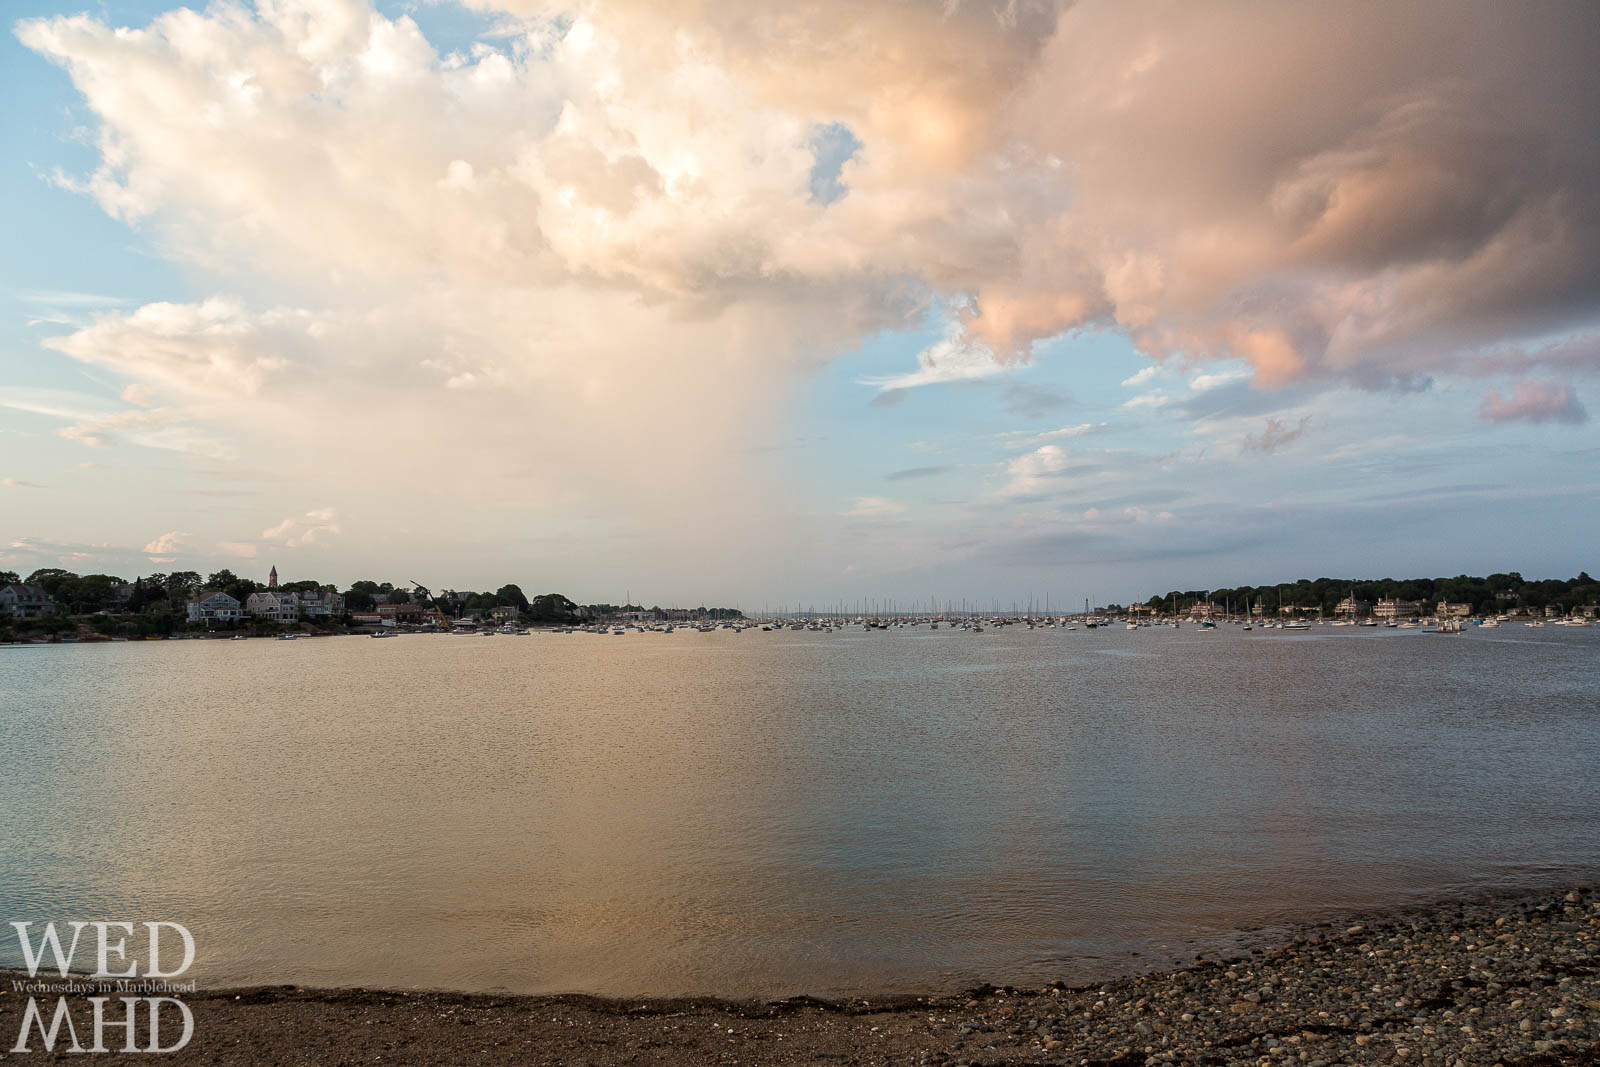 Looking out at Marblehead Harbor from the rocky shore of Riverhead Beach on a mid-August evening reveals numerous boats under a glowing sky